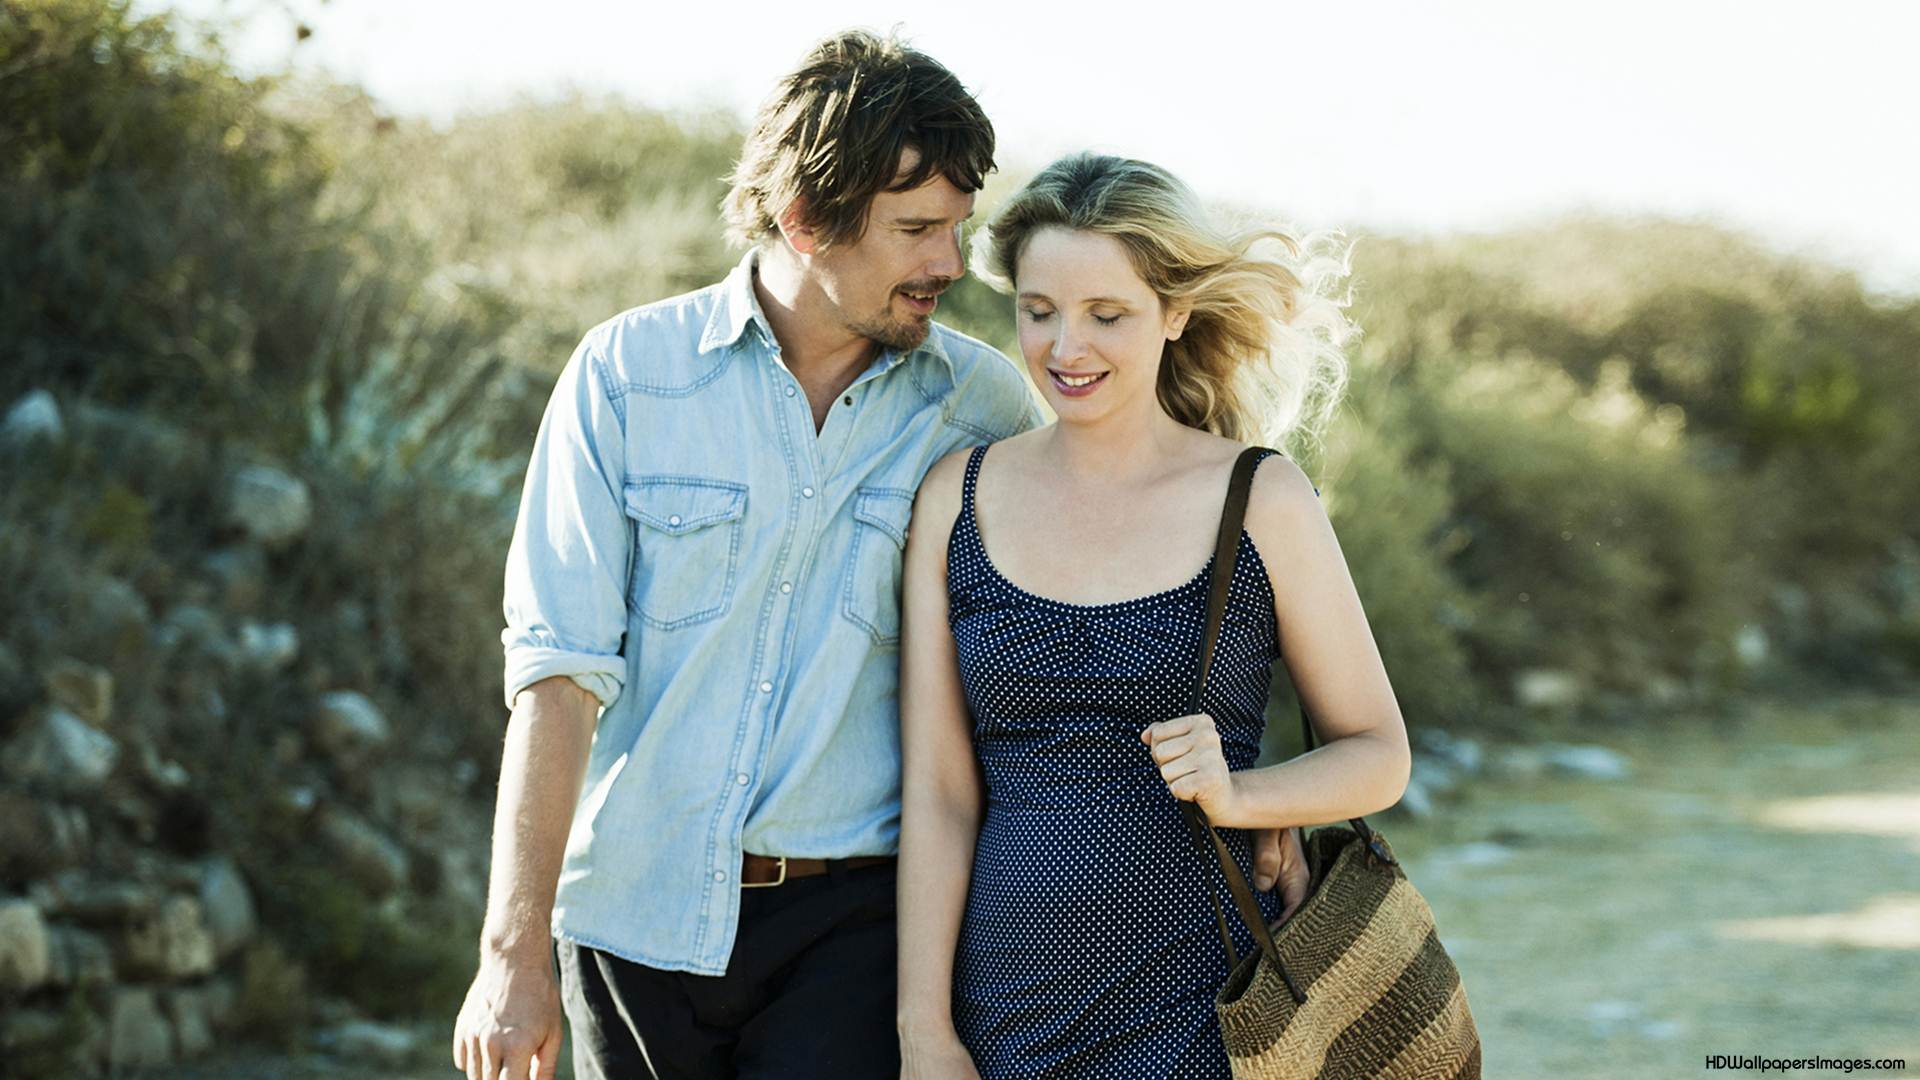 Before Midnight Stills HD Wallpaper, Backgrounds Image